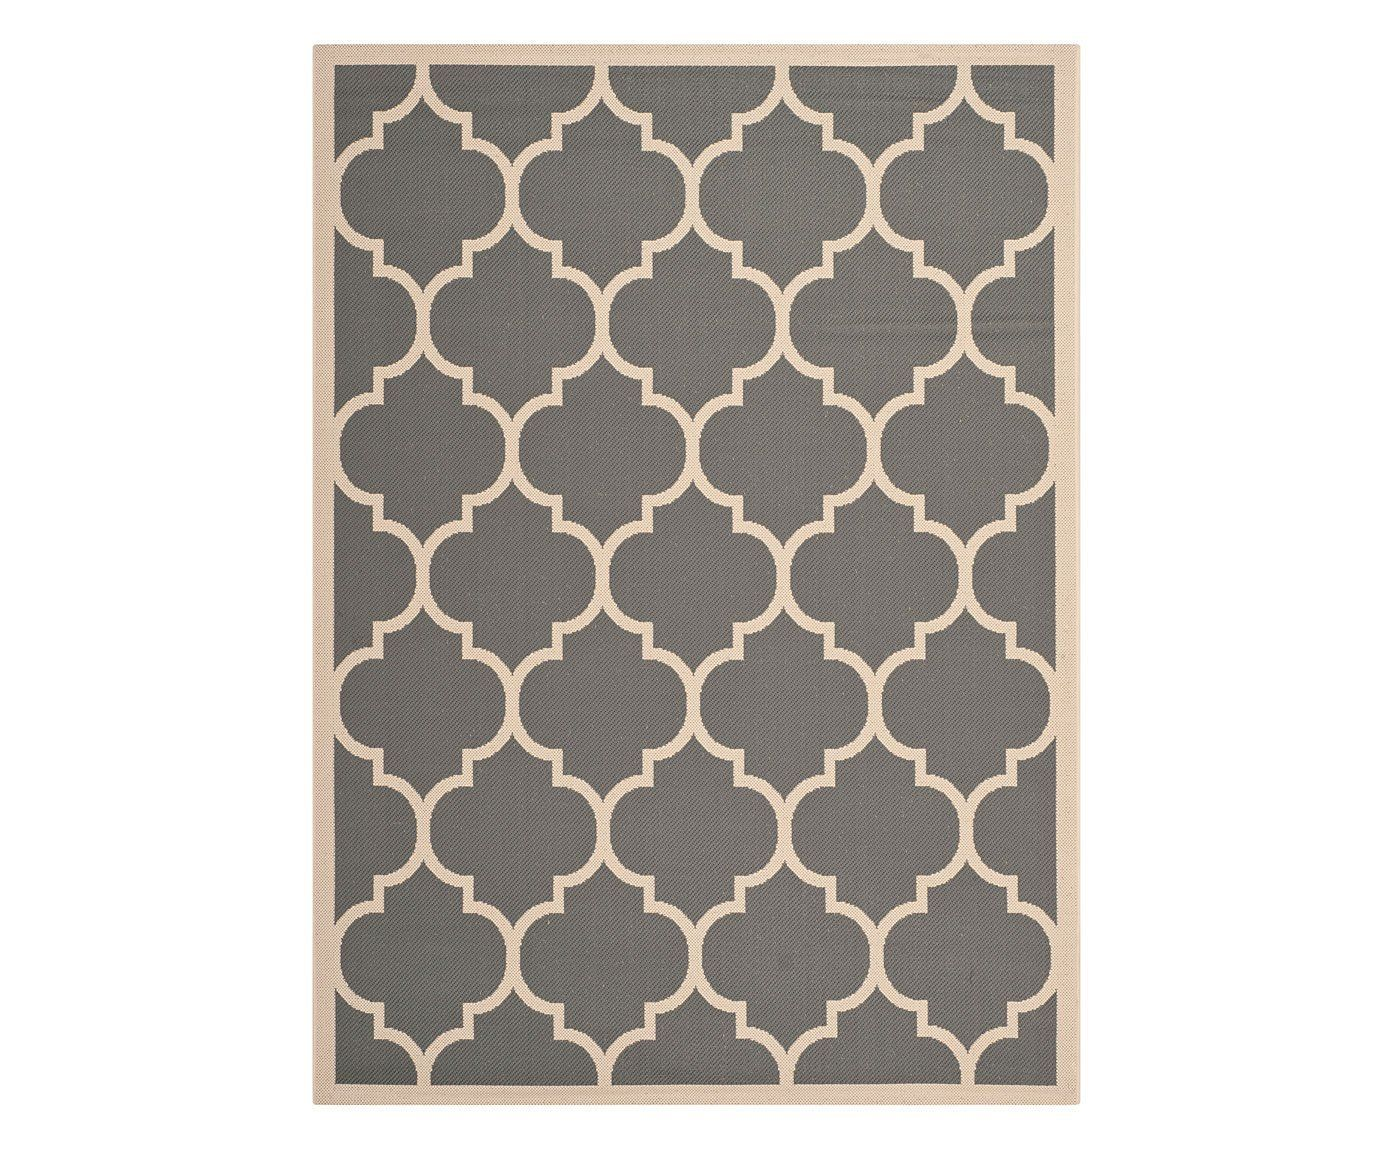 Safavieh Teppich teppich monaco 122 x 171 cm by safavieh westwing home living